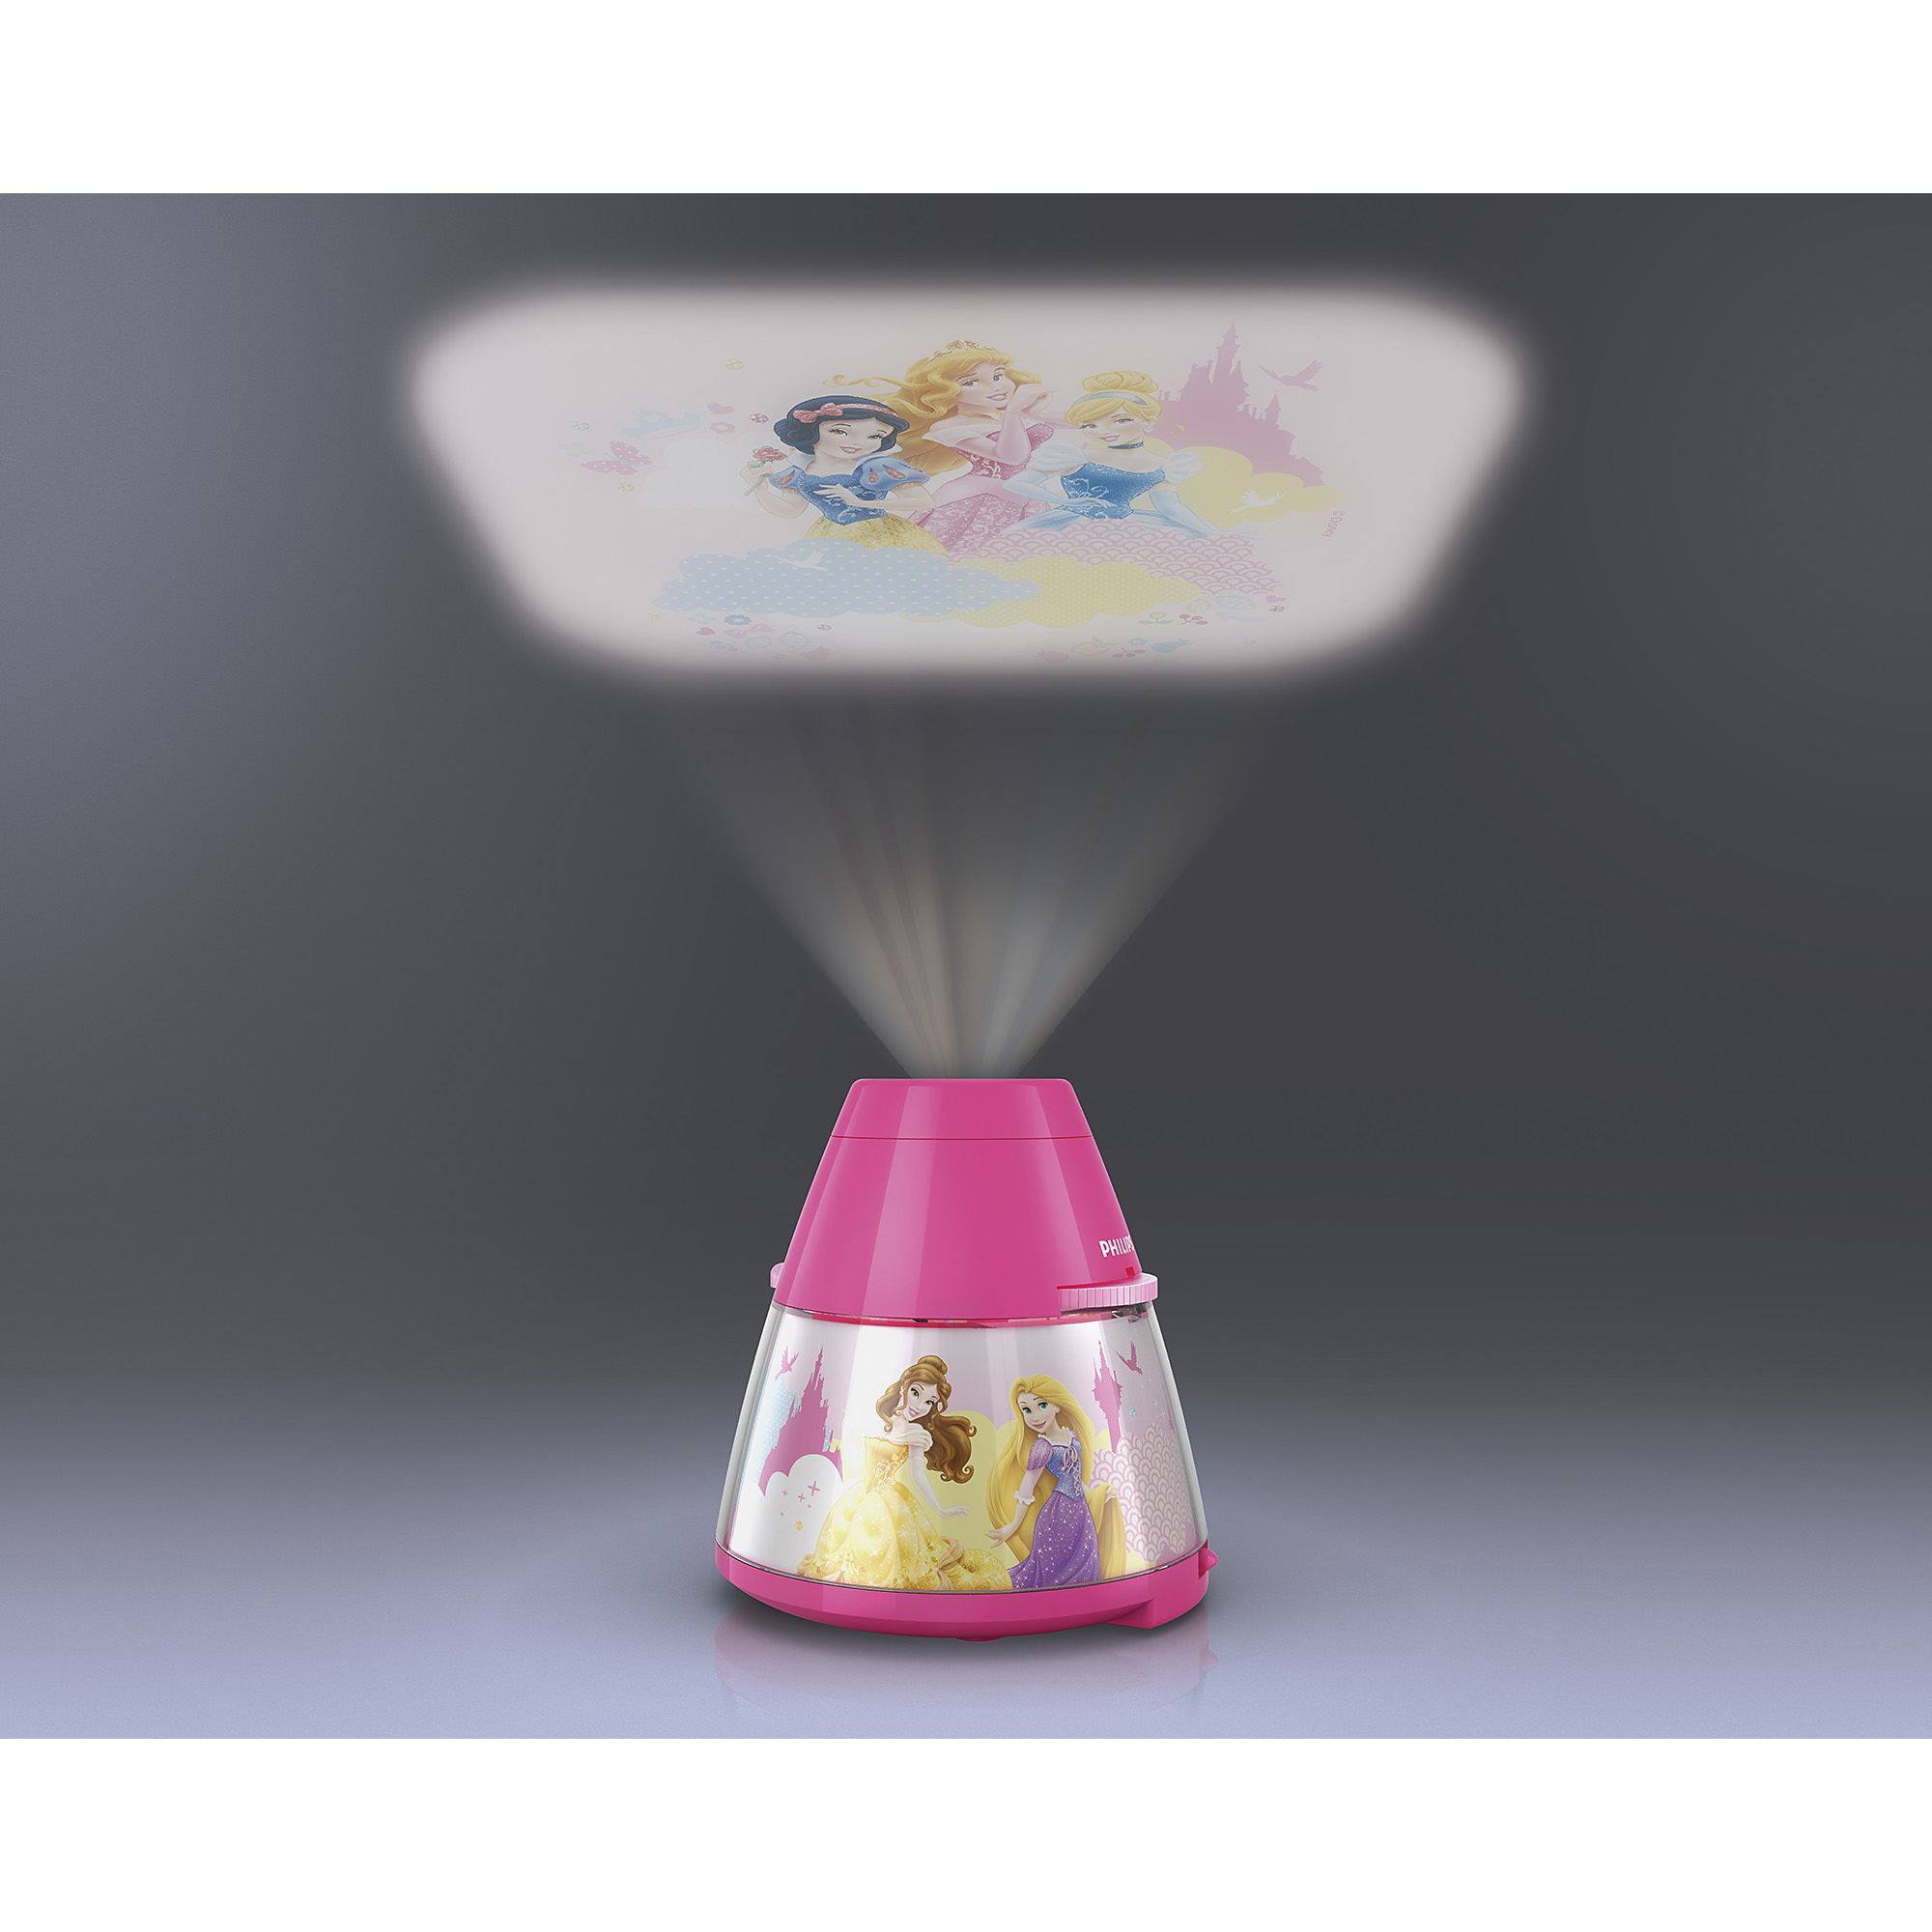 Philips Disney Princess children's LED night light projector portable battery Thumbnail 6